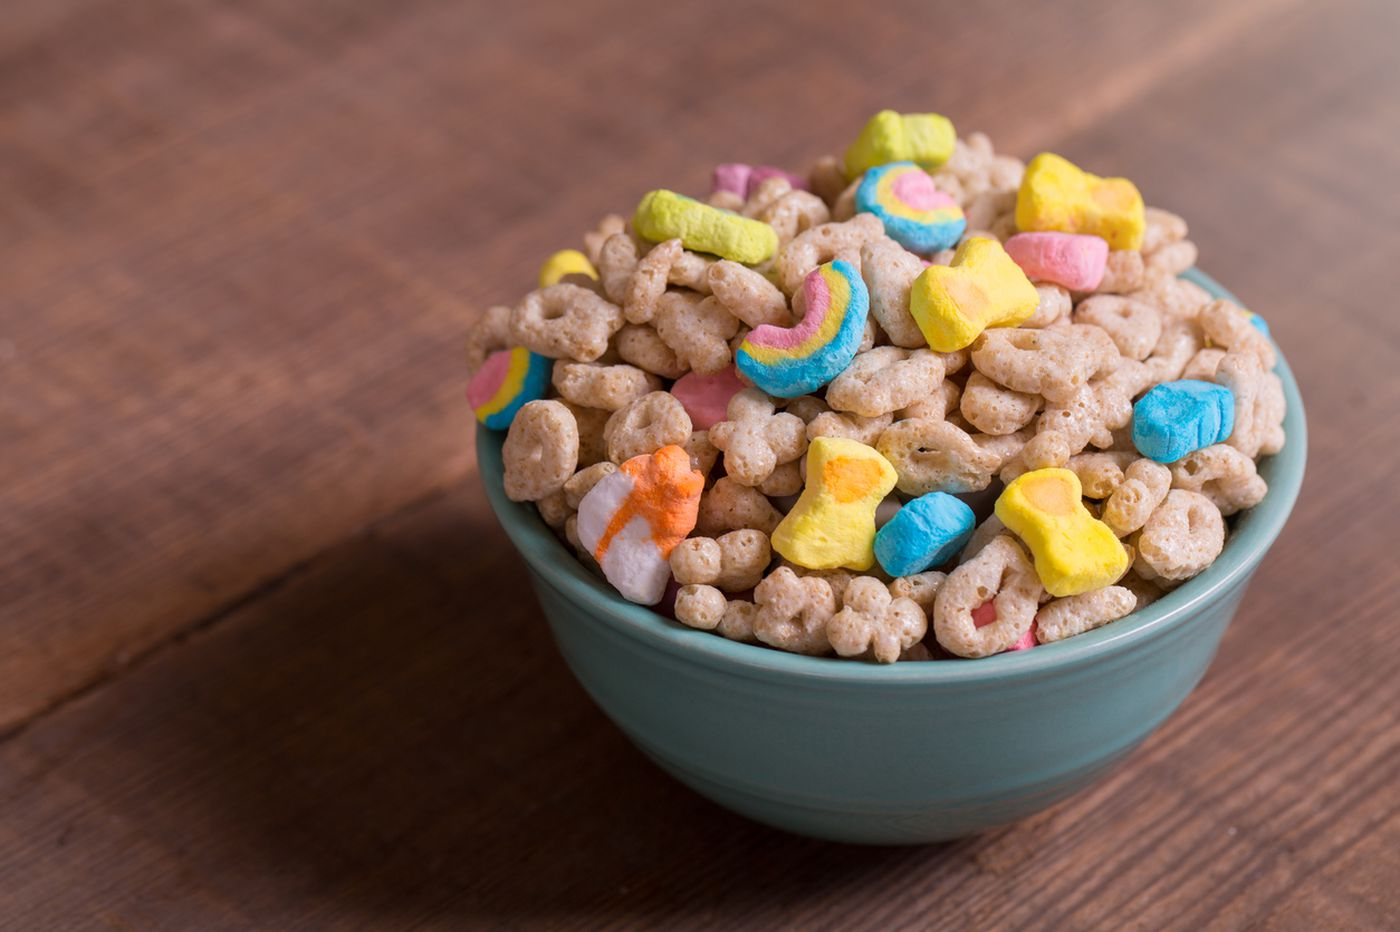 Research shows some food additives may harm children's health